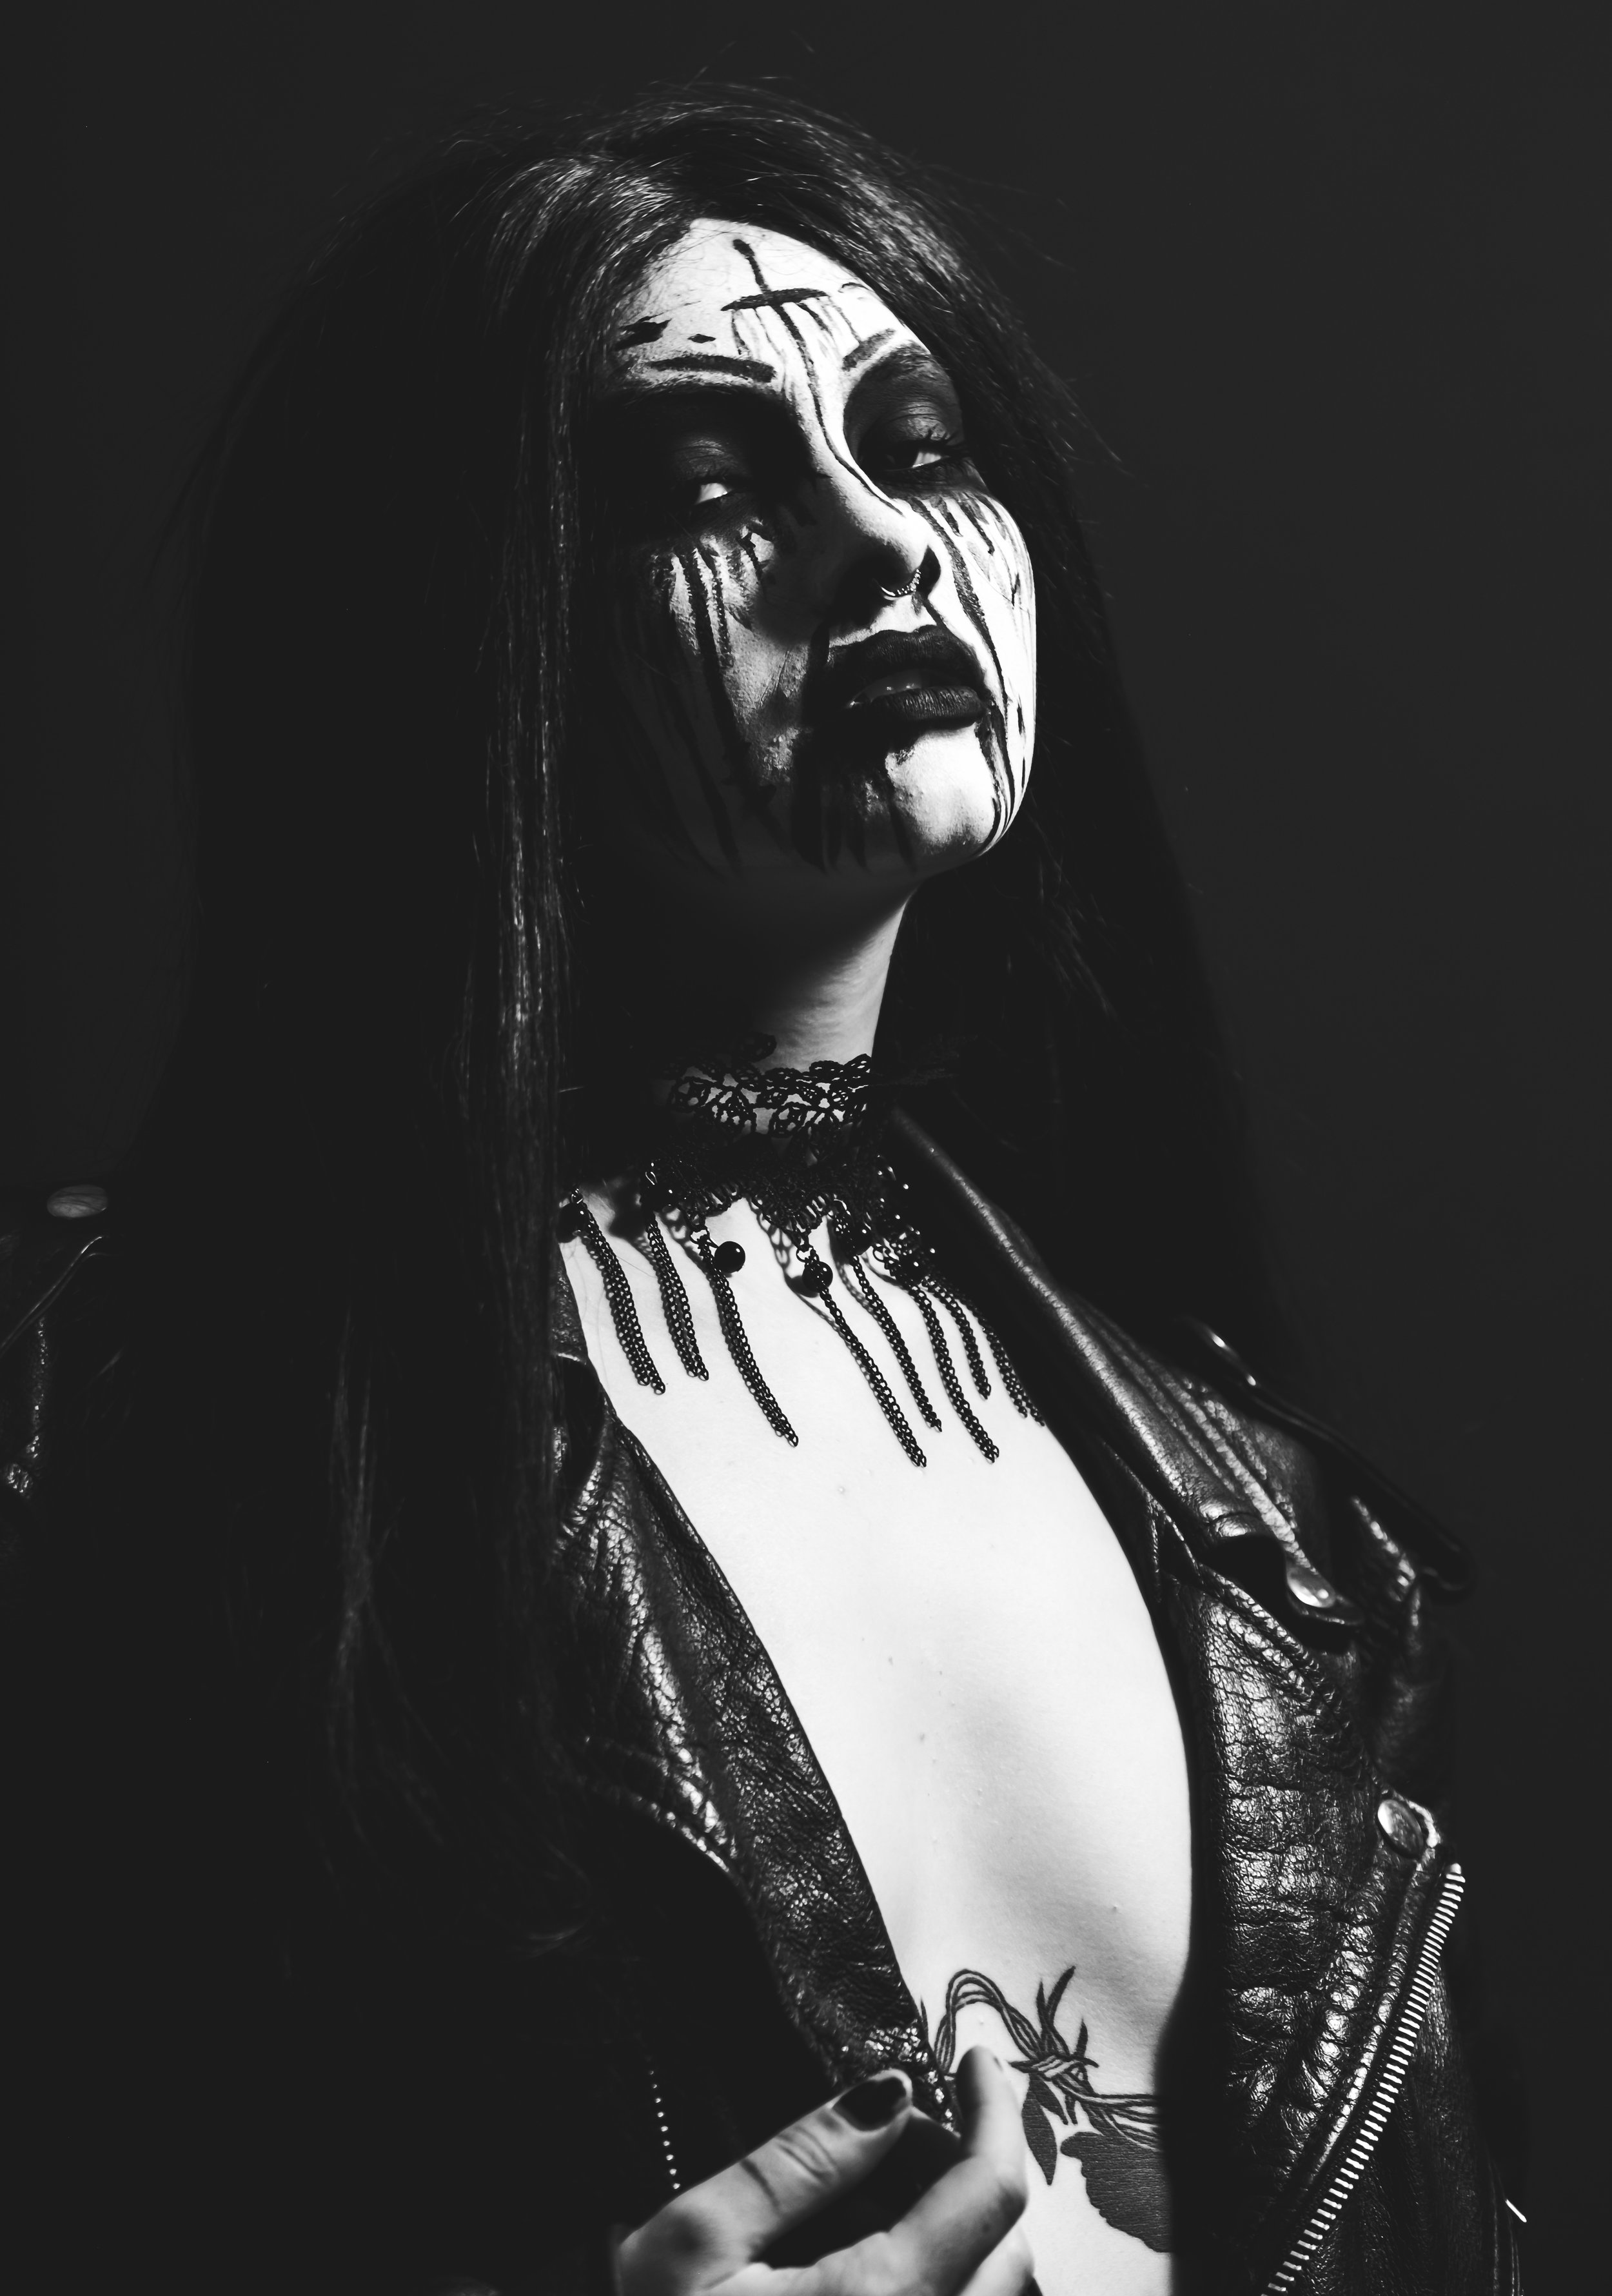 Hail Black Metal! (1 of 26).jpg